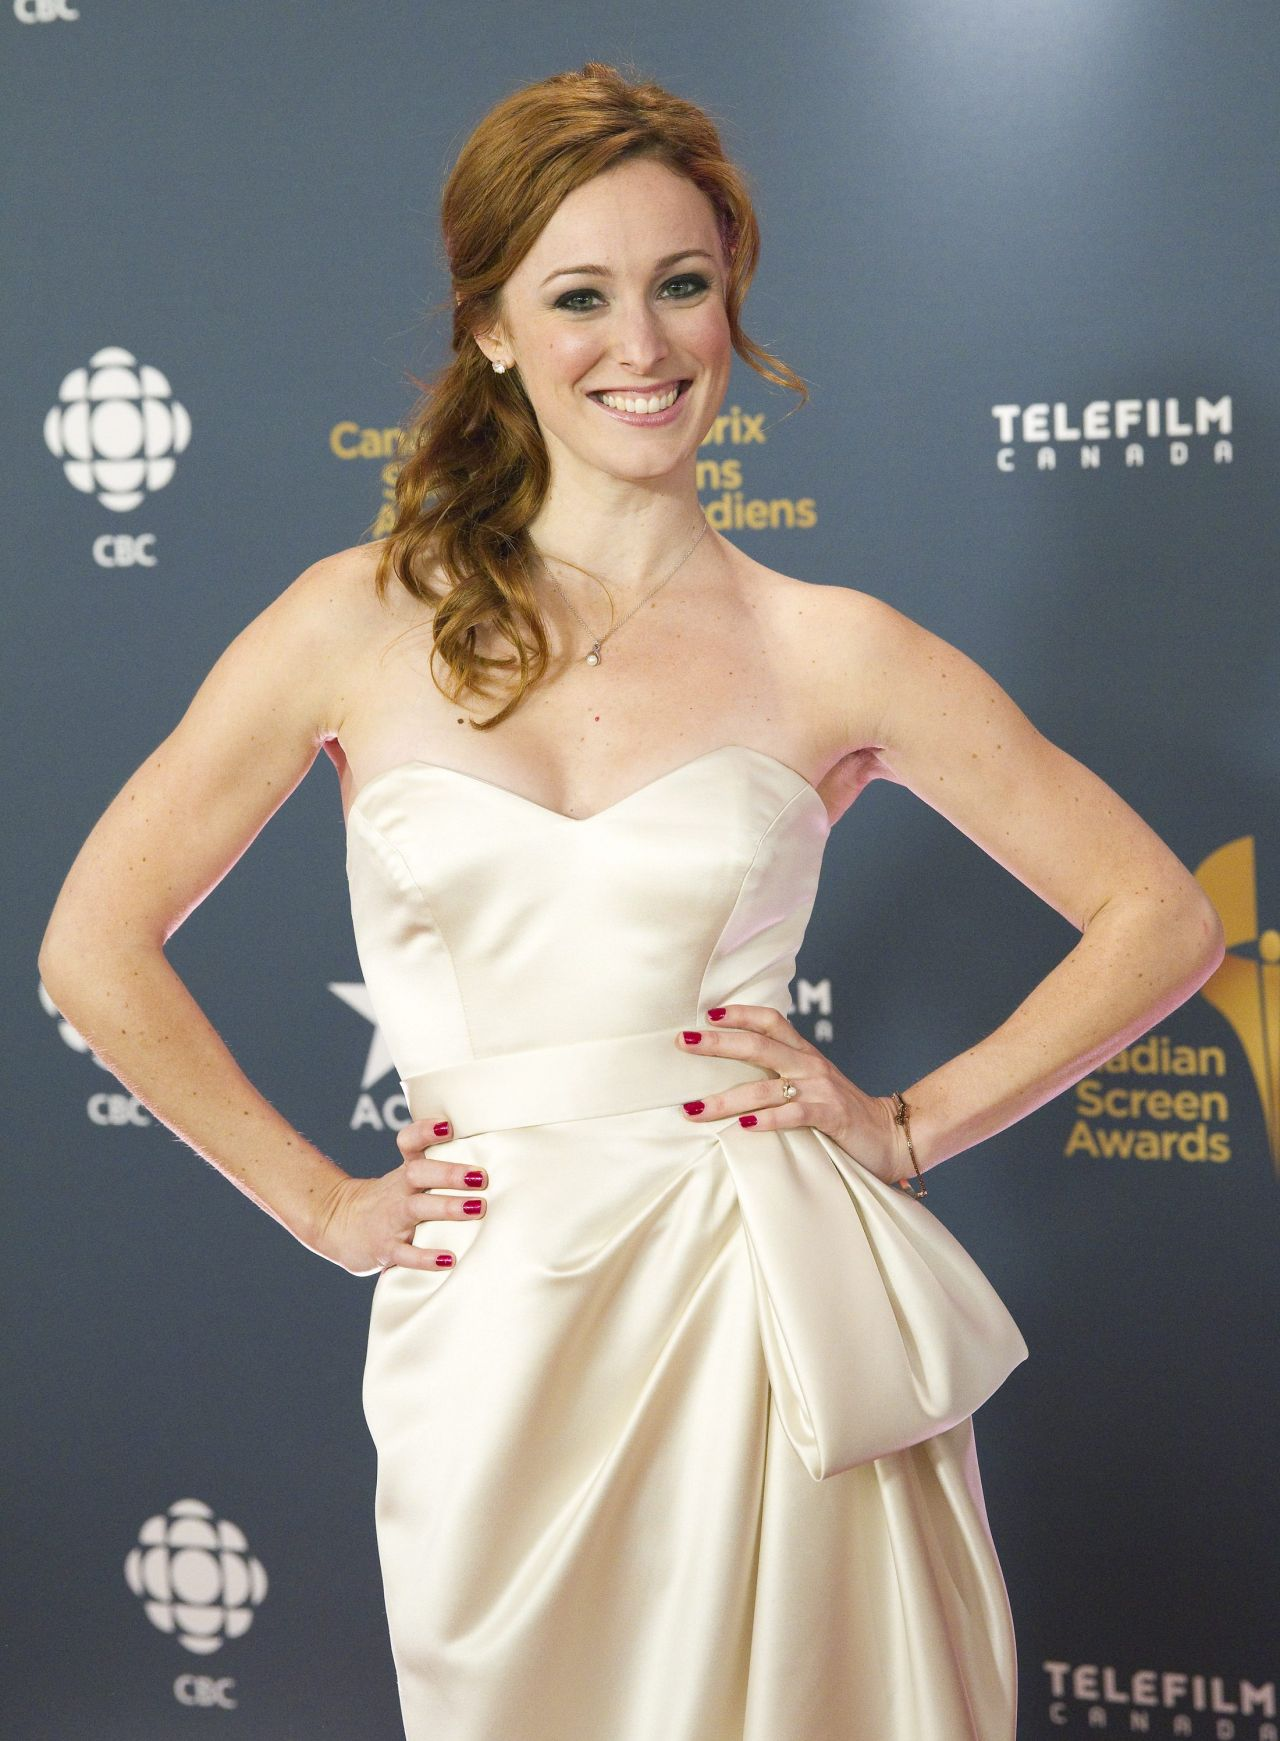 Carrie-Lynn Neales - 2014 Canadian Screen Awards